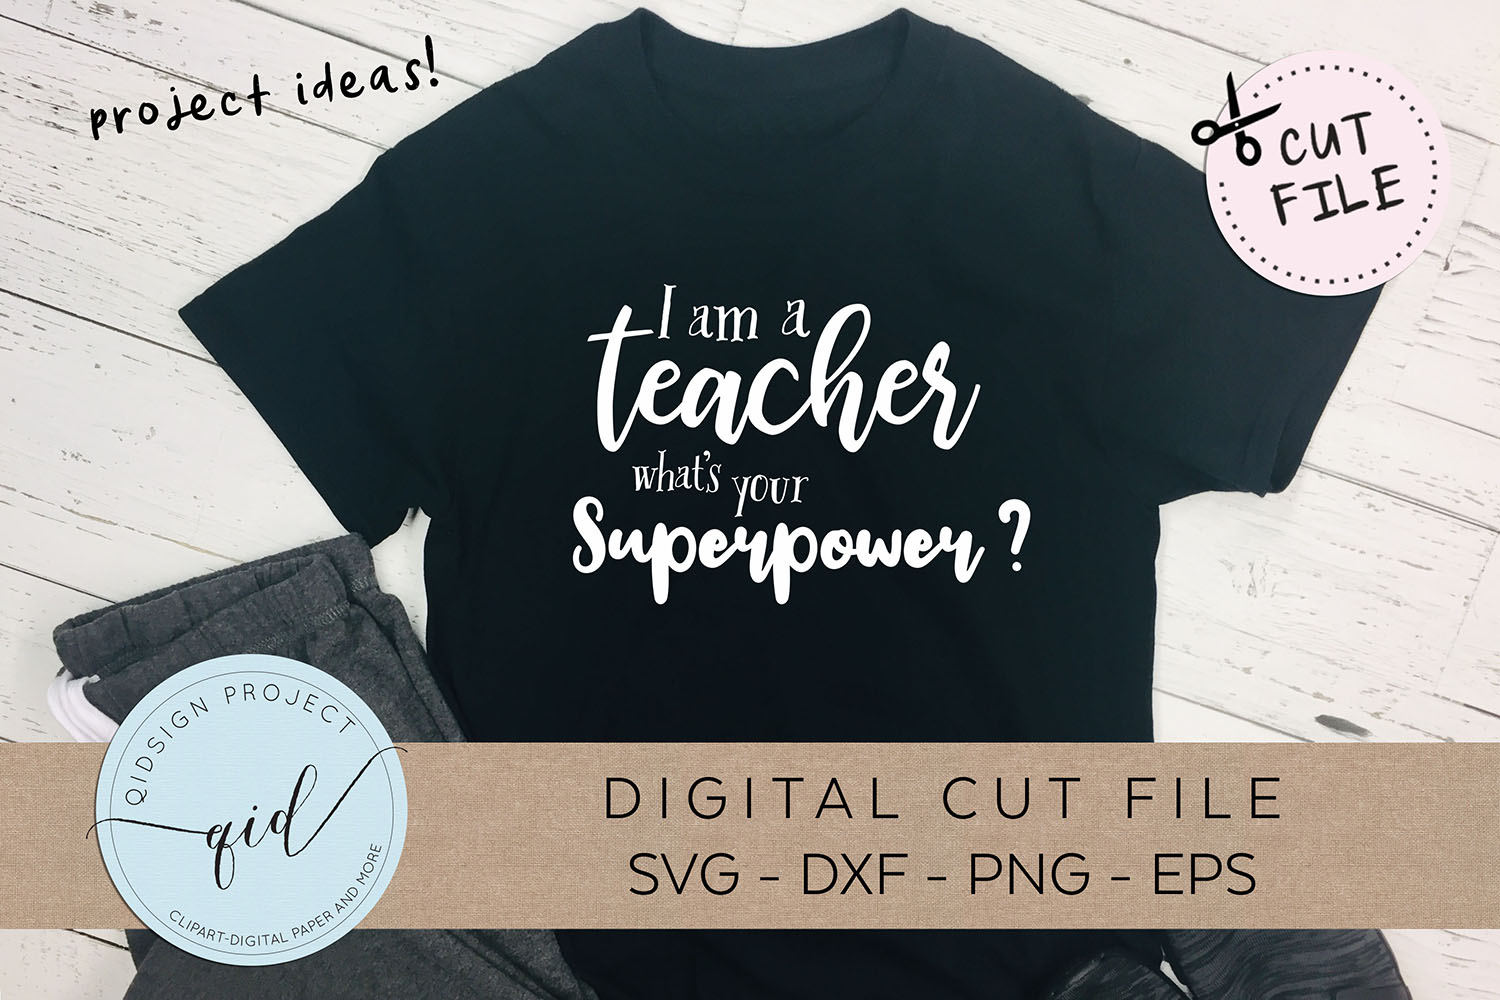 I am a teacher what's your superpower SVG DXF PNG EPS example image 2